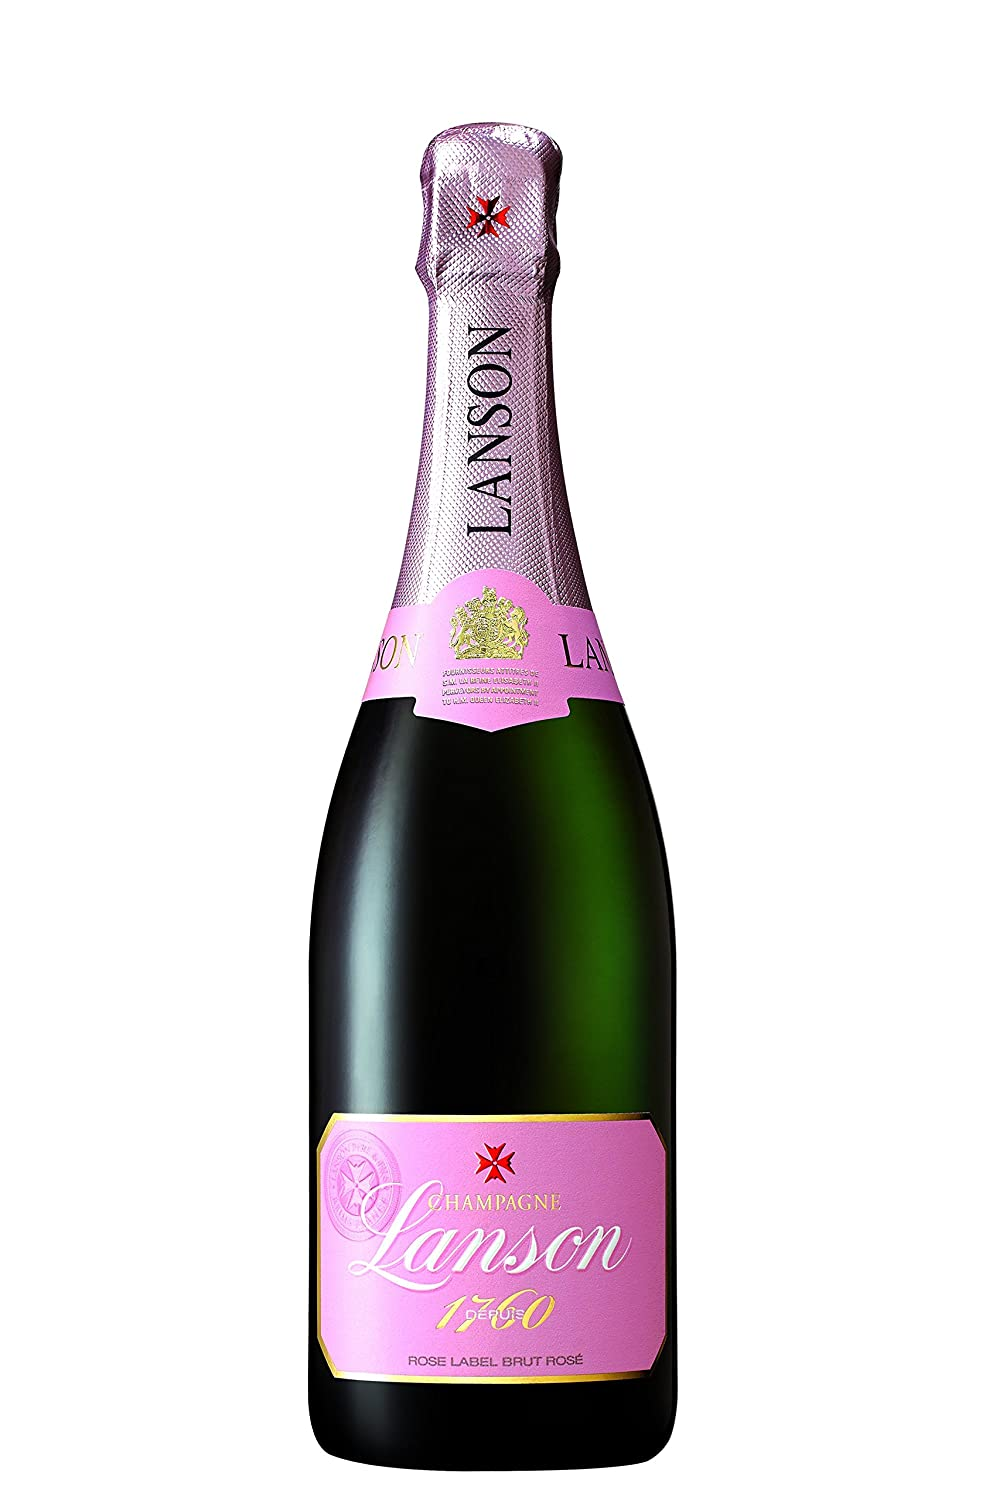 Baby champagne: description, composition, manufacturers and reviews 21